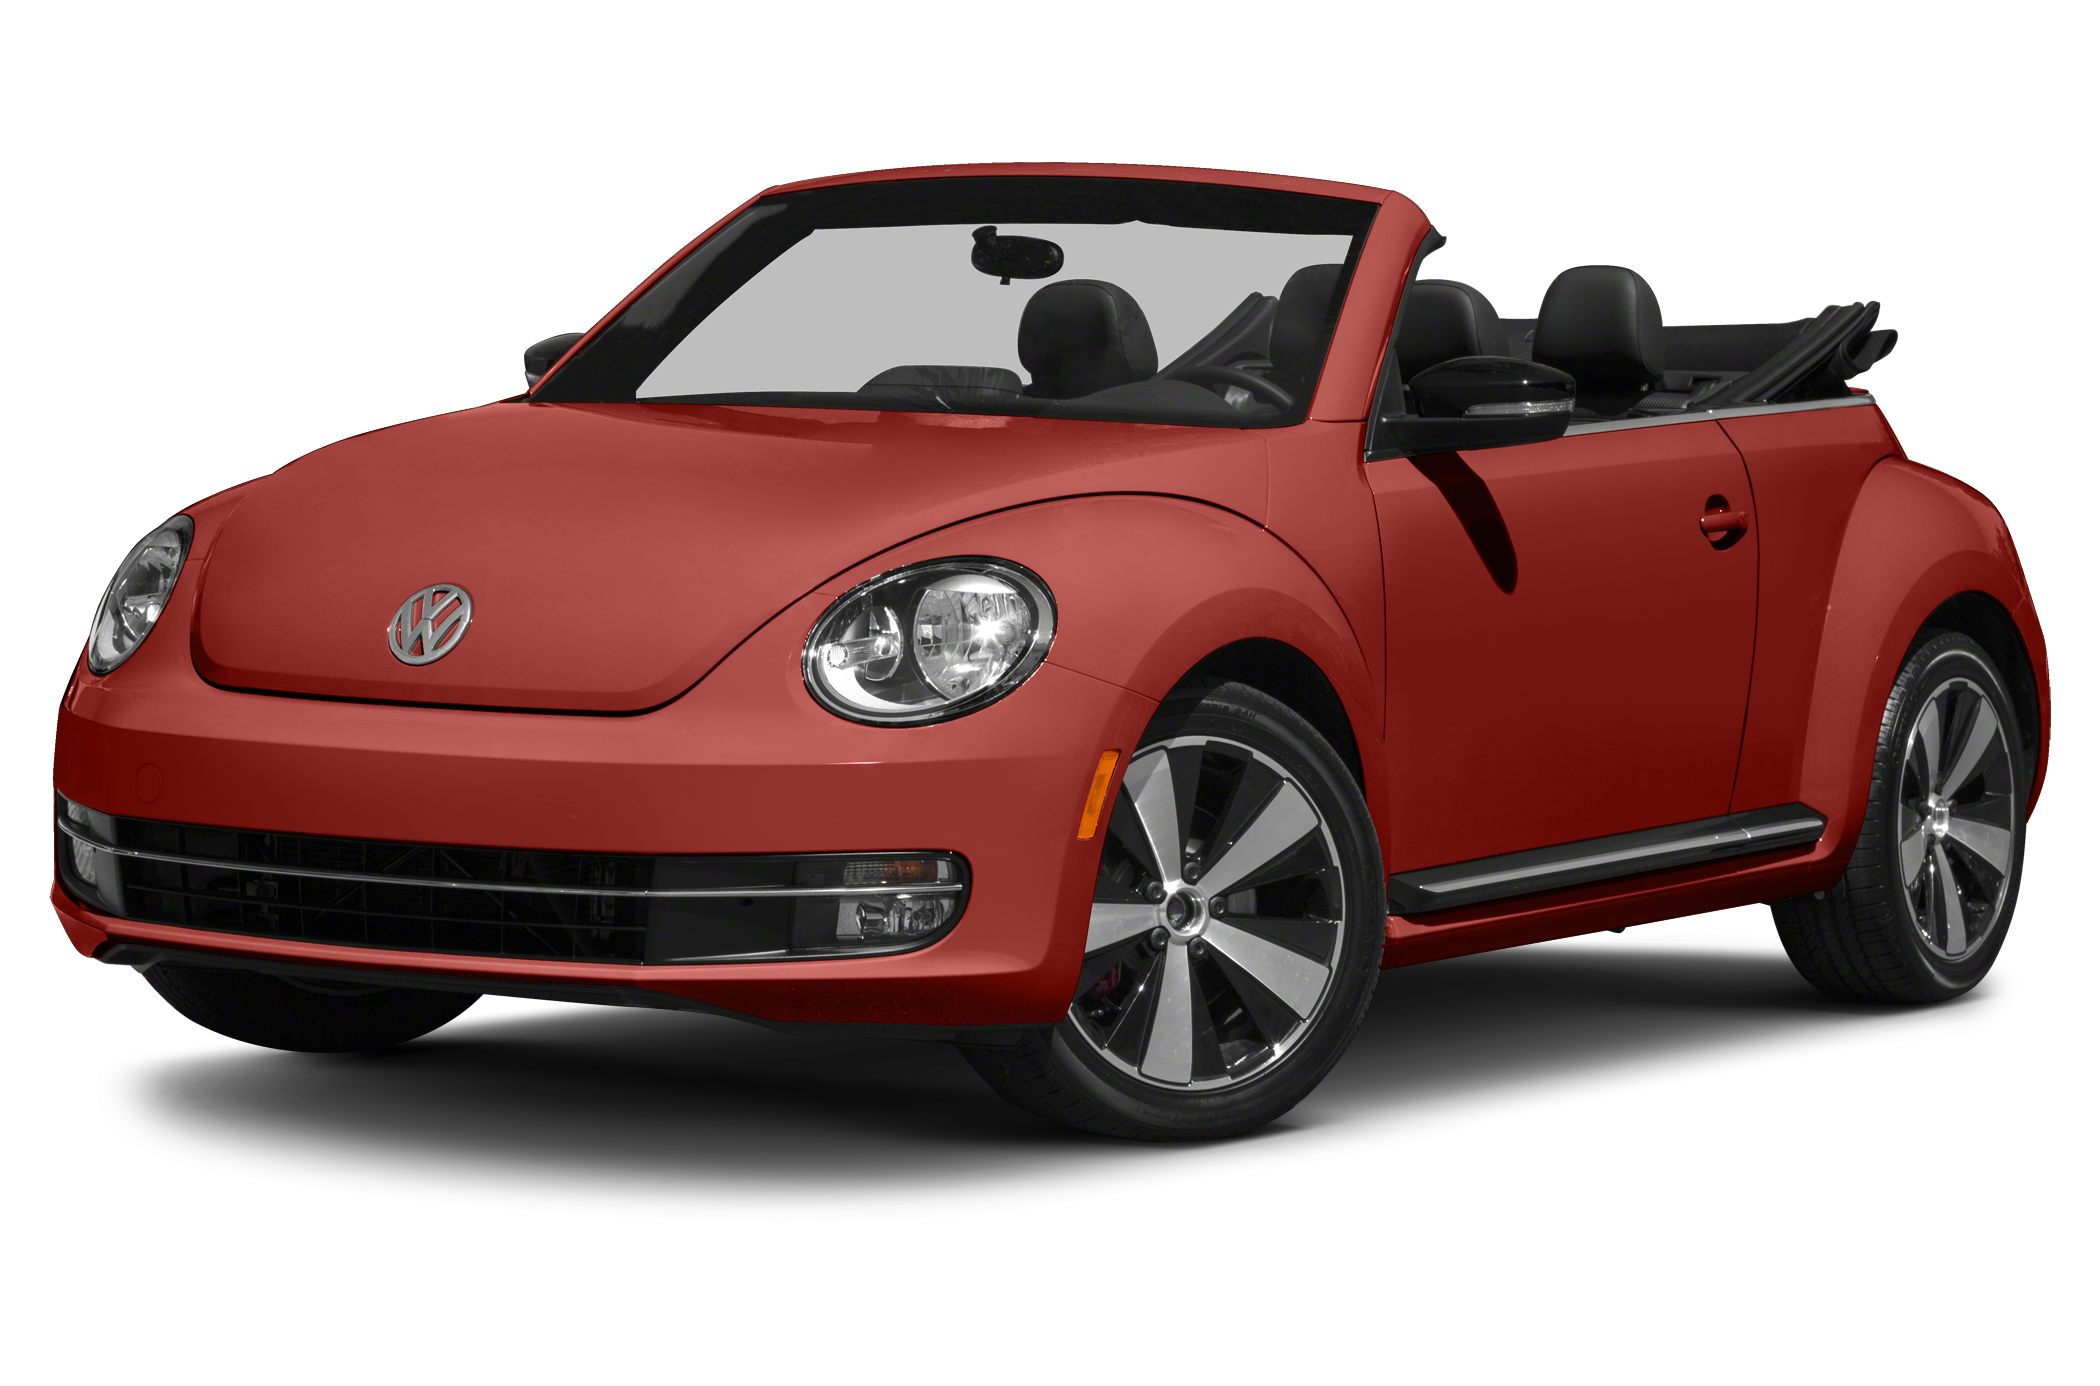 2013 Volkswagen Beetle 2.0T Convertible for sale in Phoenix for $21,918 with 14,971 miles